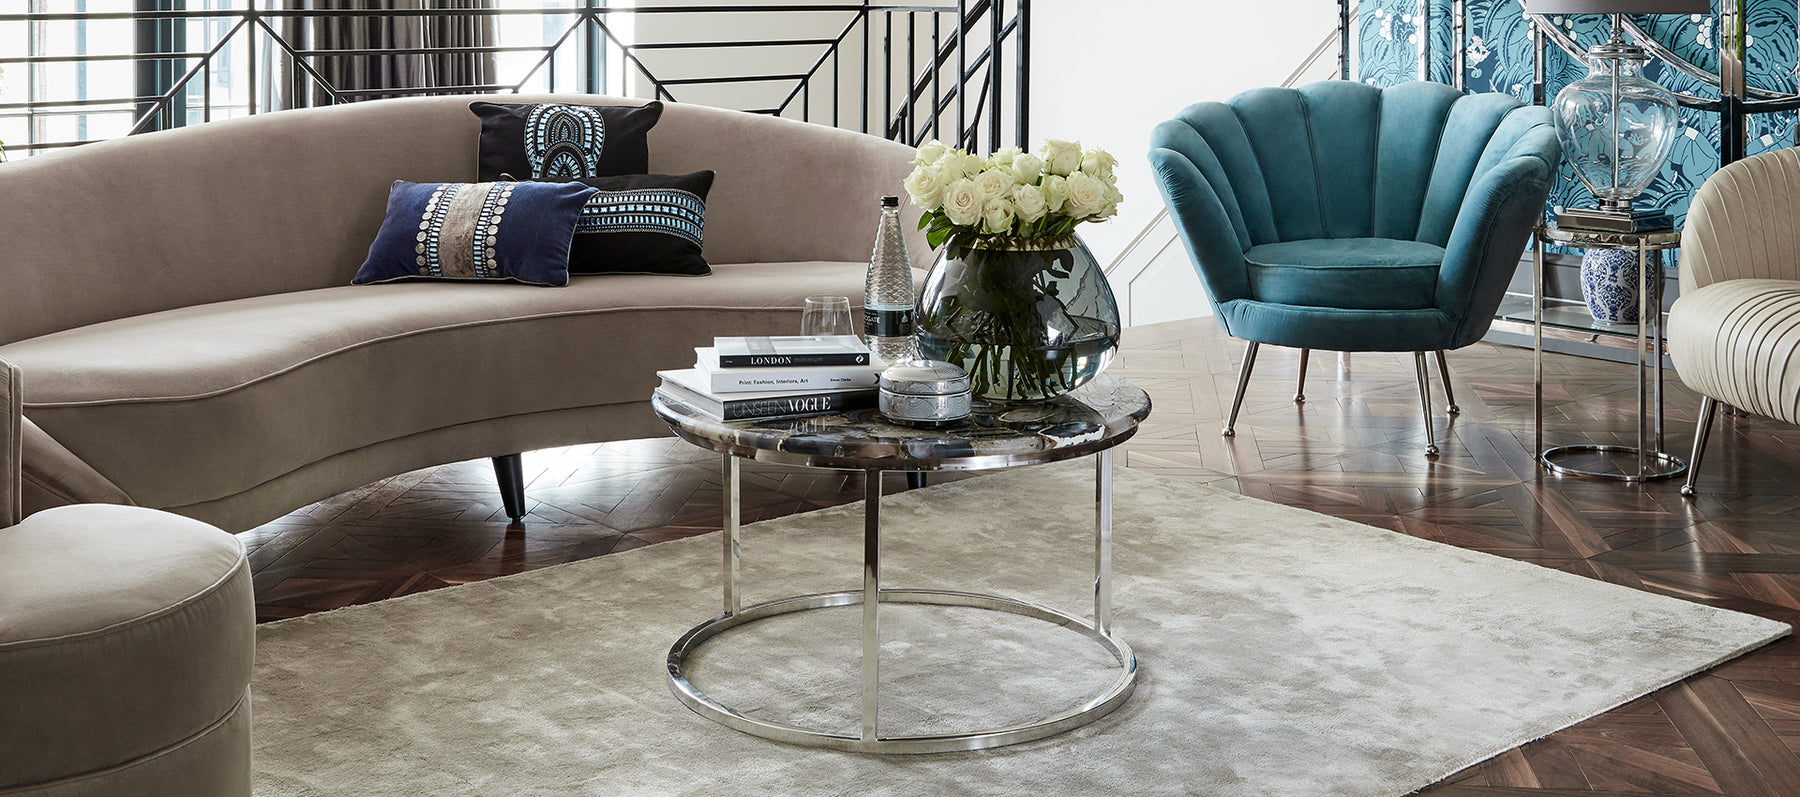 Coffee Tables Olivia S Luxury Homeware And Furnishings